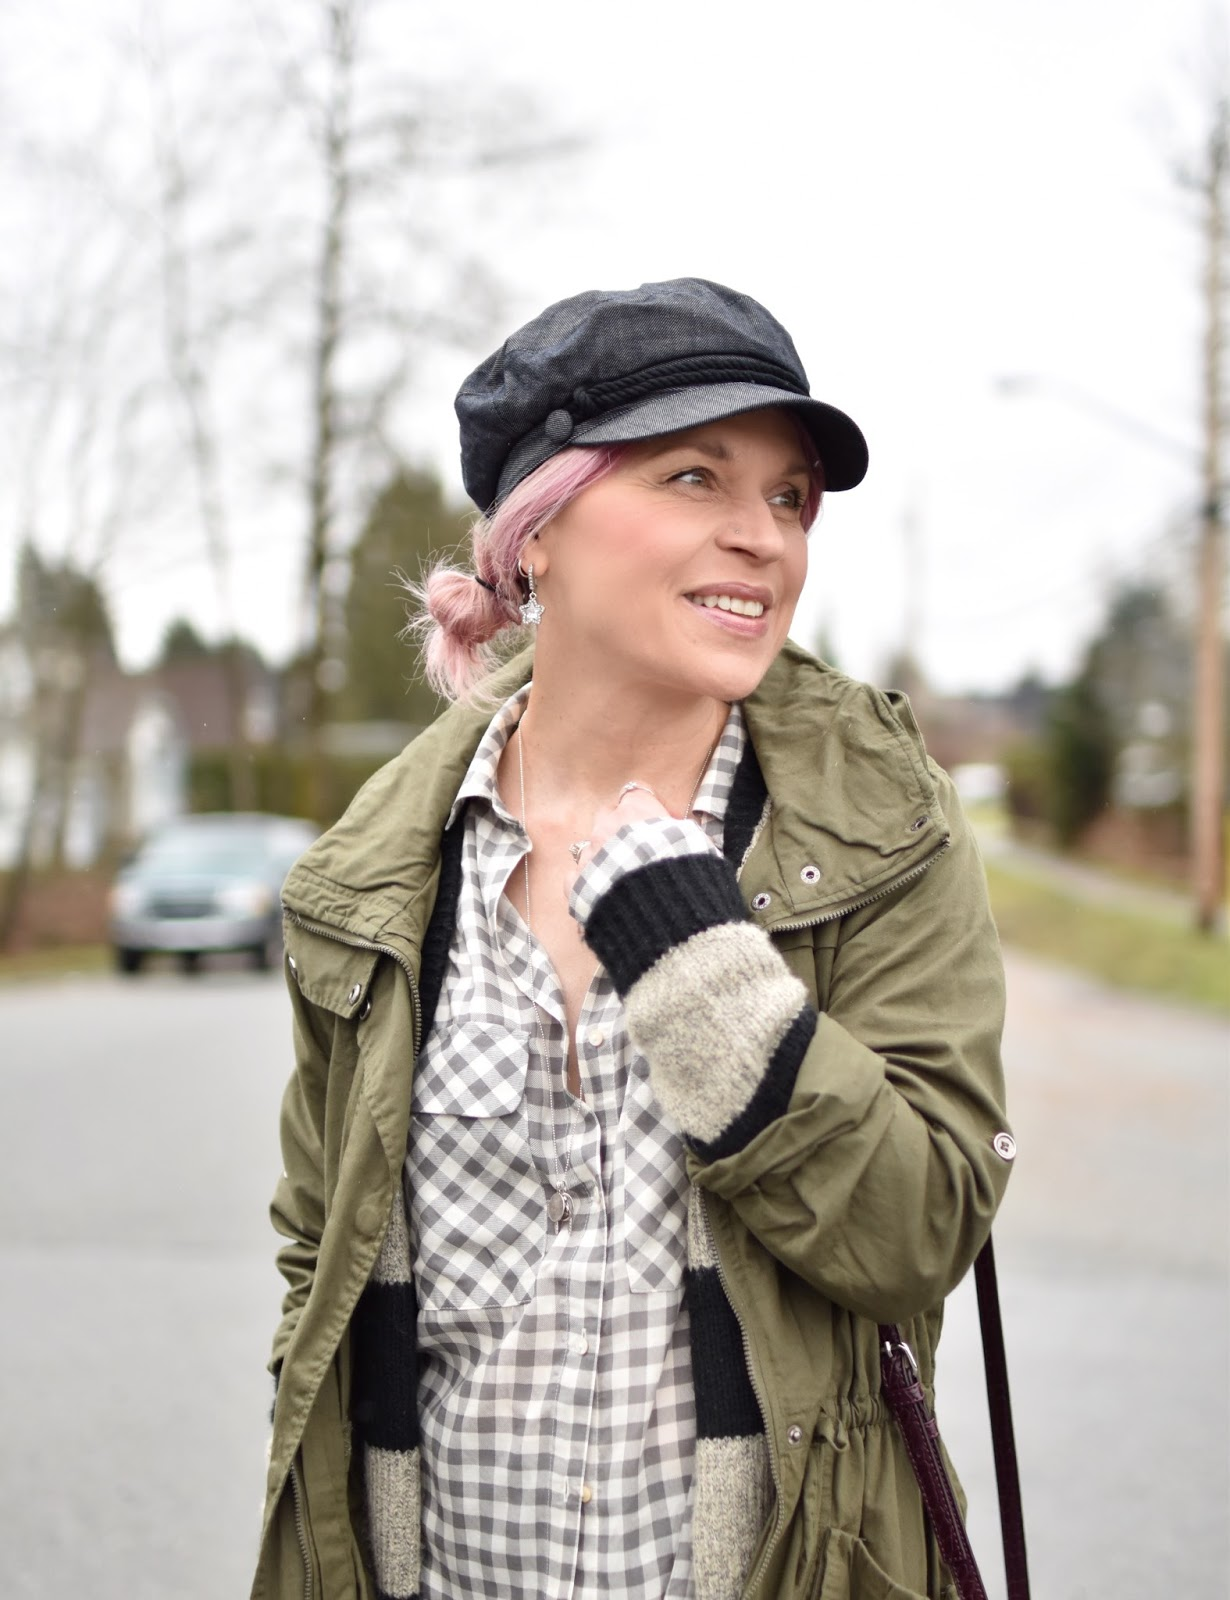 Monika Faulkner outfit inspiration - denim baker boy cap, gingham shirt, striped cardigan, army-style parka